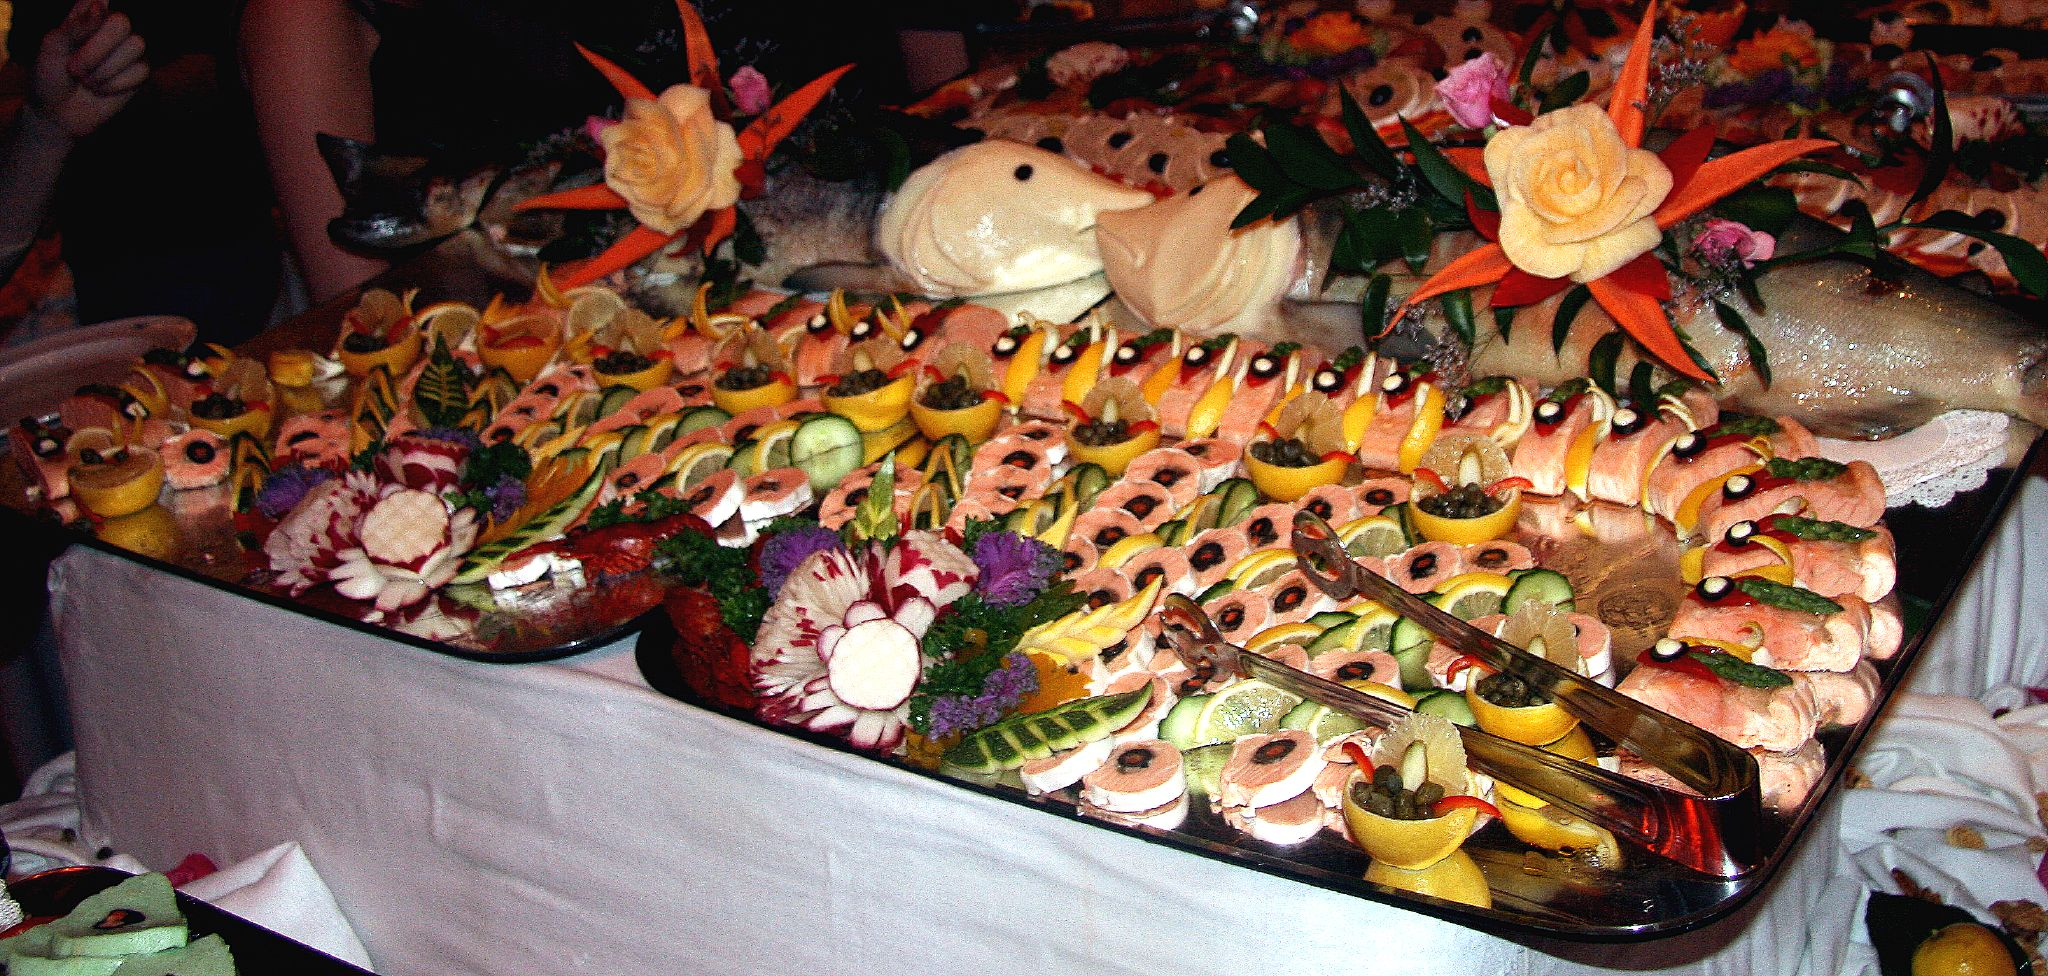 Xmas Party Food Idad